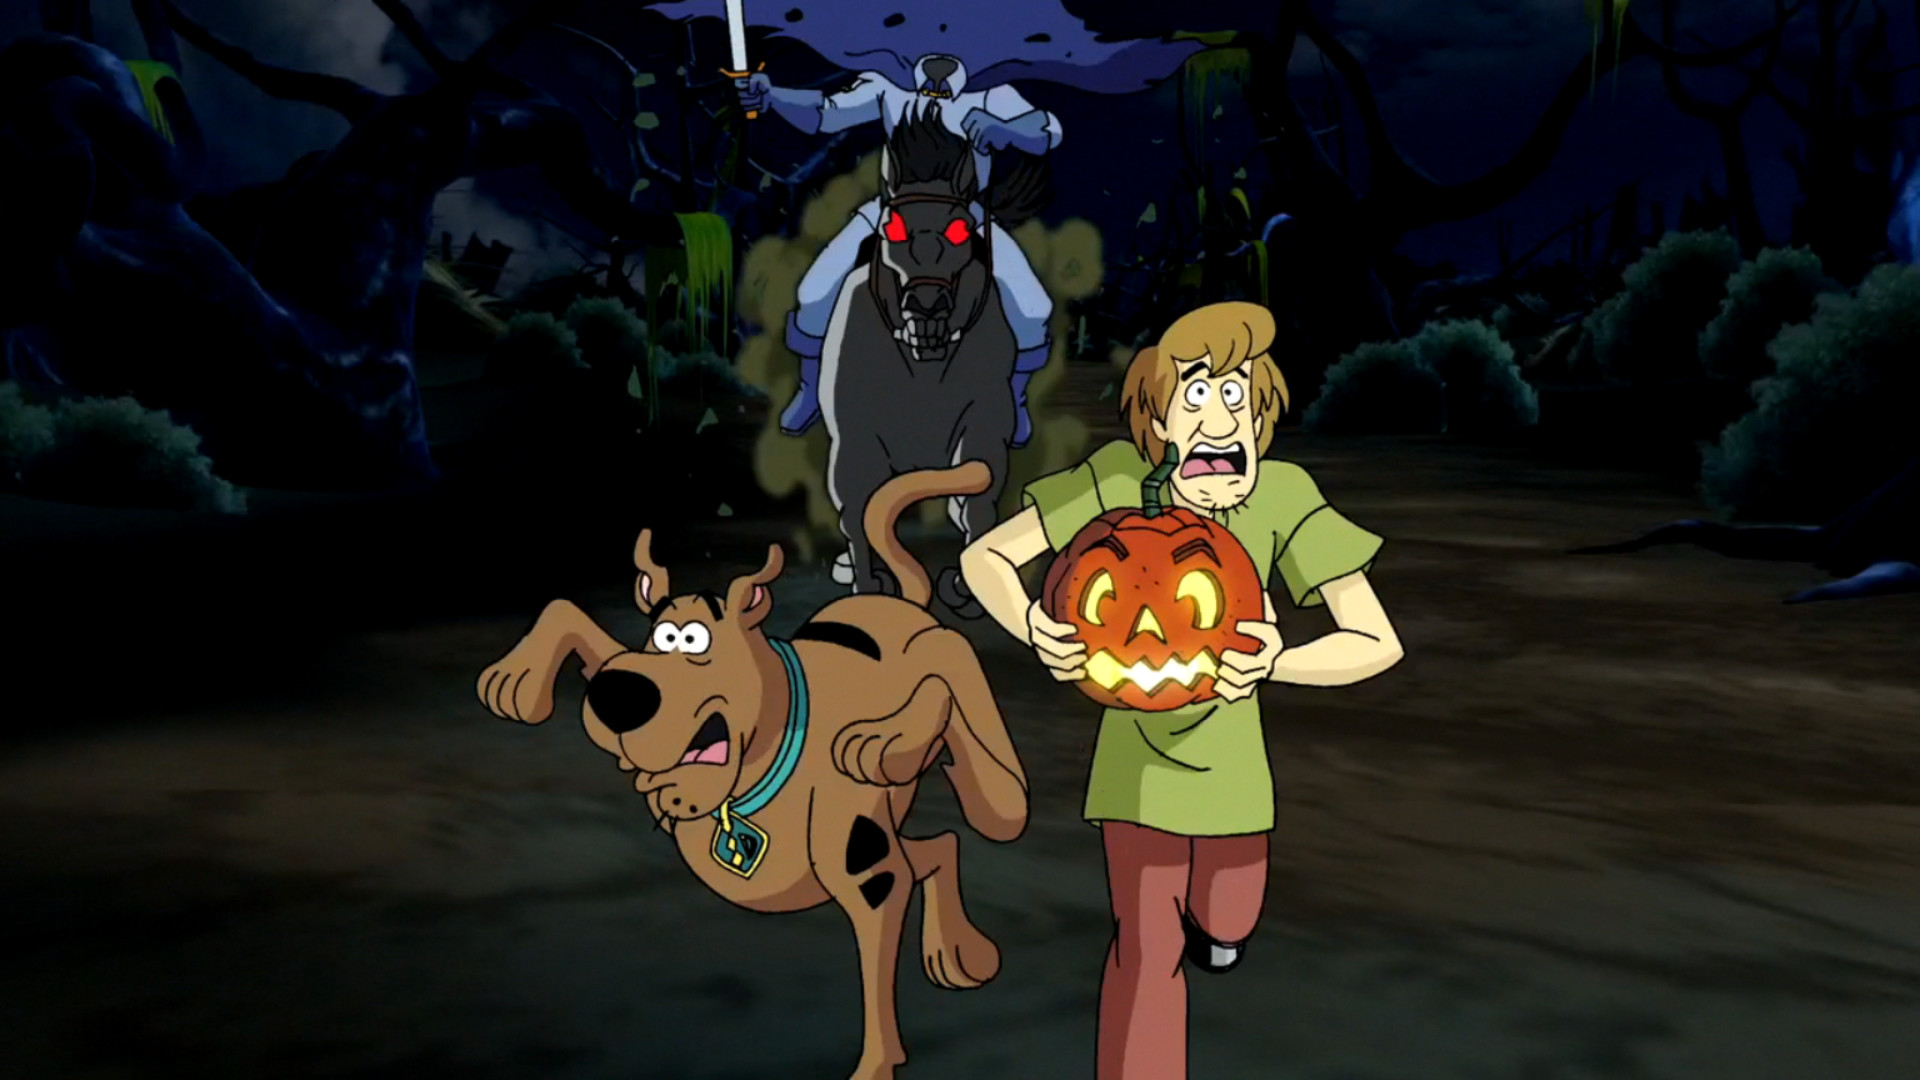 1920x1080 Scooby Doo Camp Scare Full HD Background Image For IPhone 1920A 1080